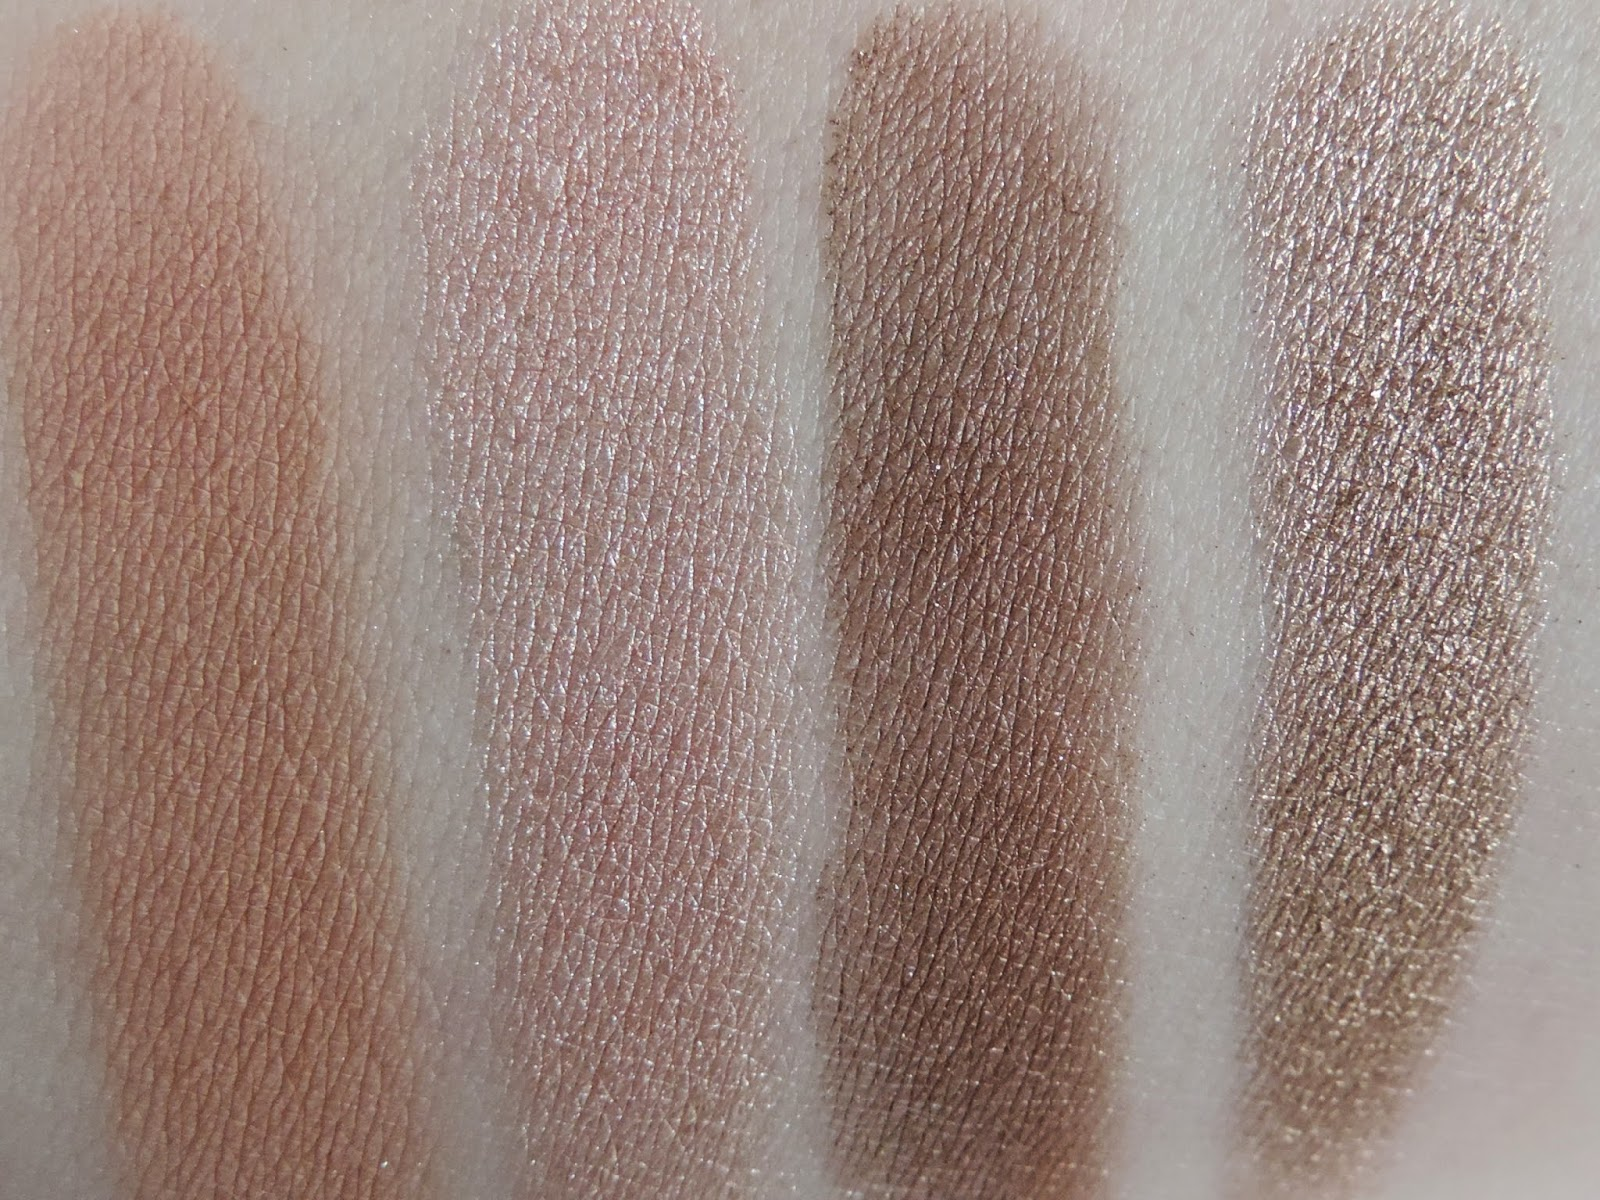 Swatches from left: Salted Caramel, Marzipan, Hazelnut, Creme Brulee